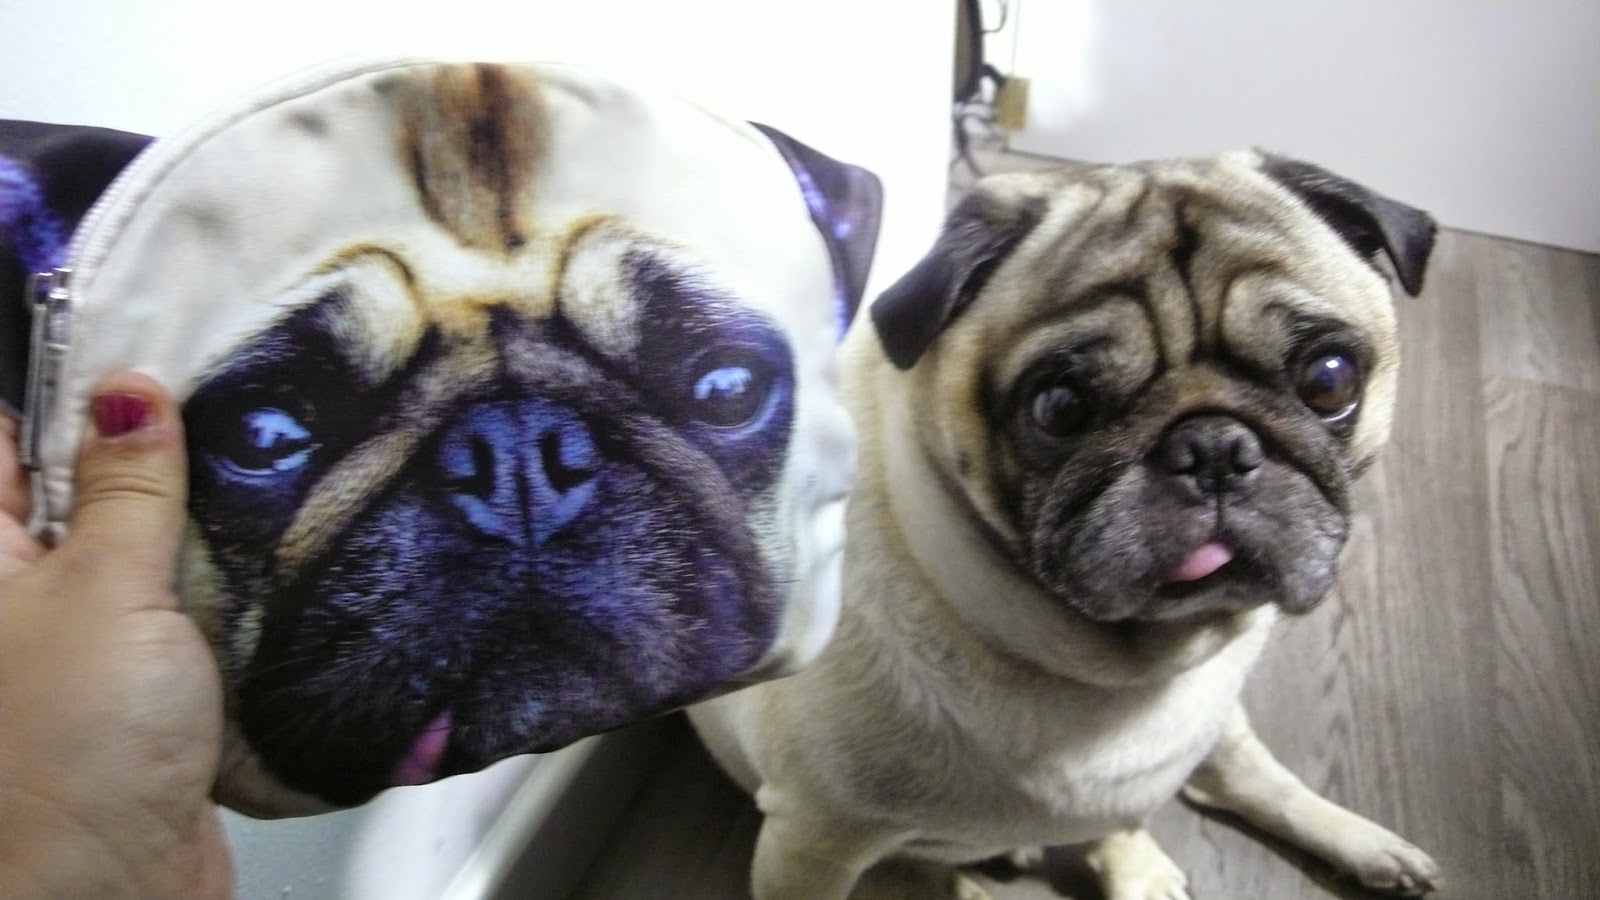 http://www.choies.com/product/3d-double-sided-printing-meng-dog-pack_p16360?cid=3957jesspai